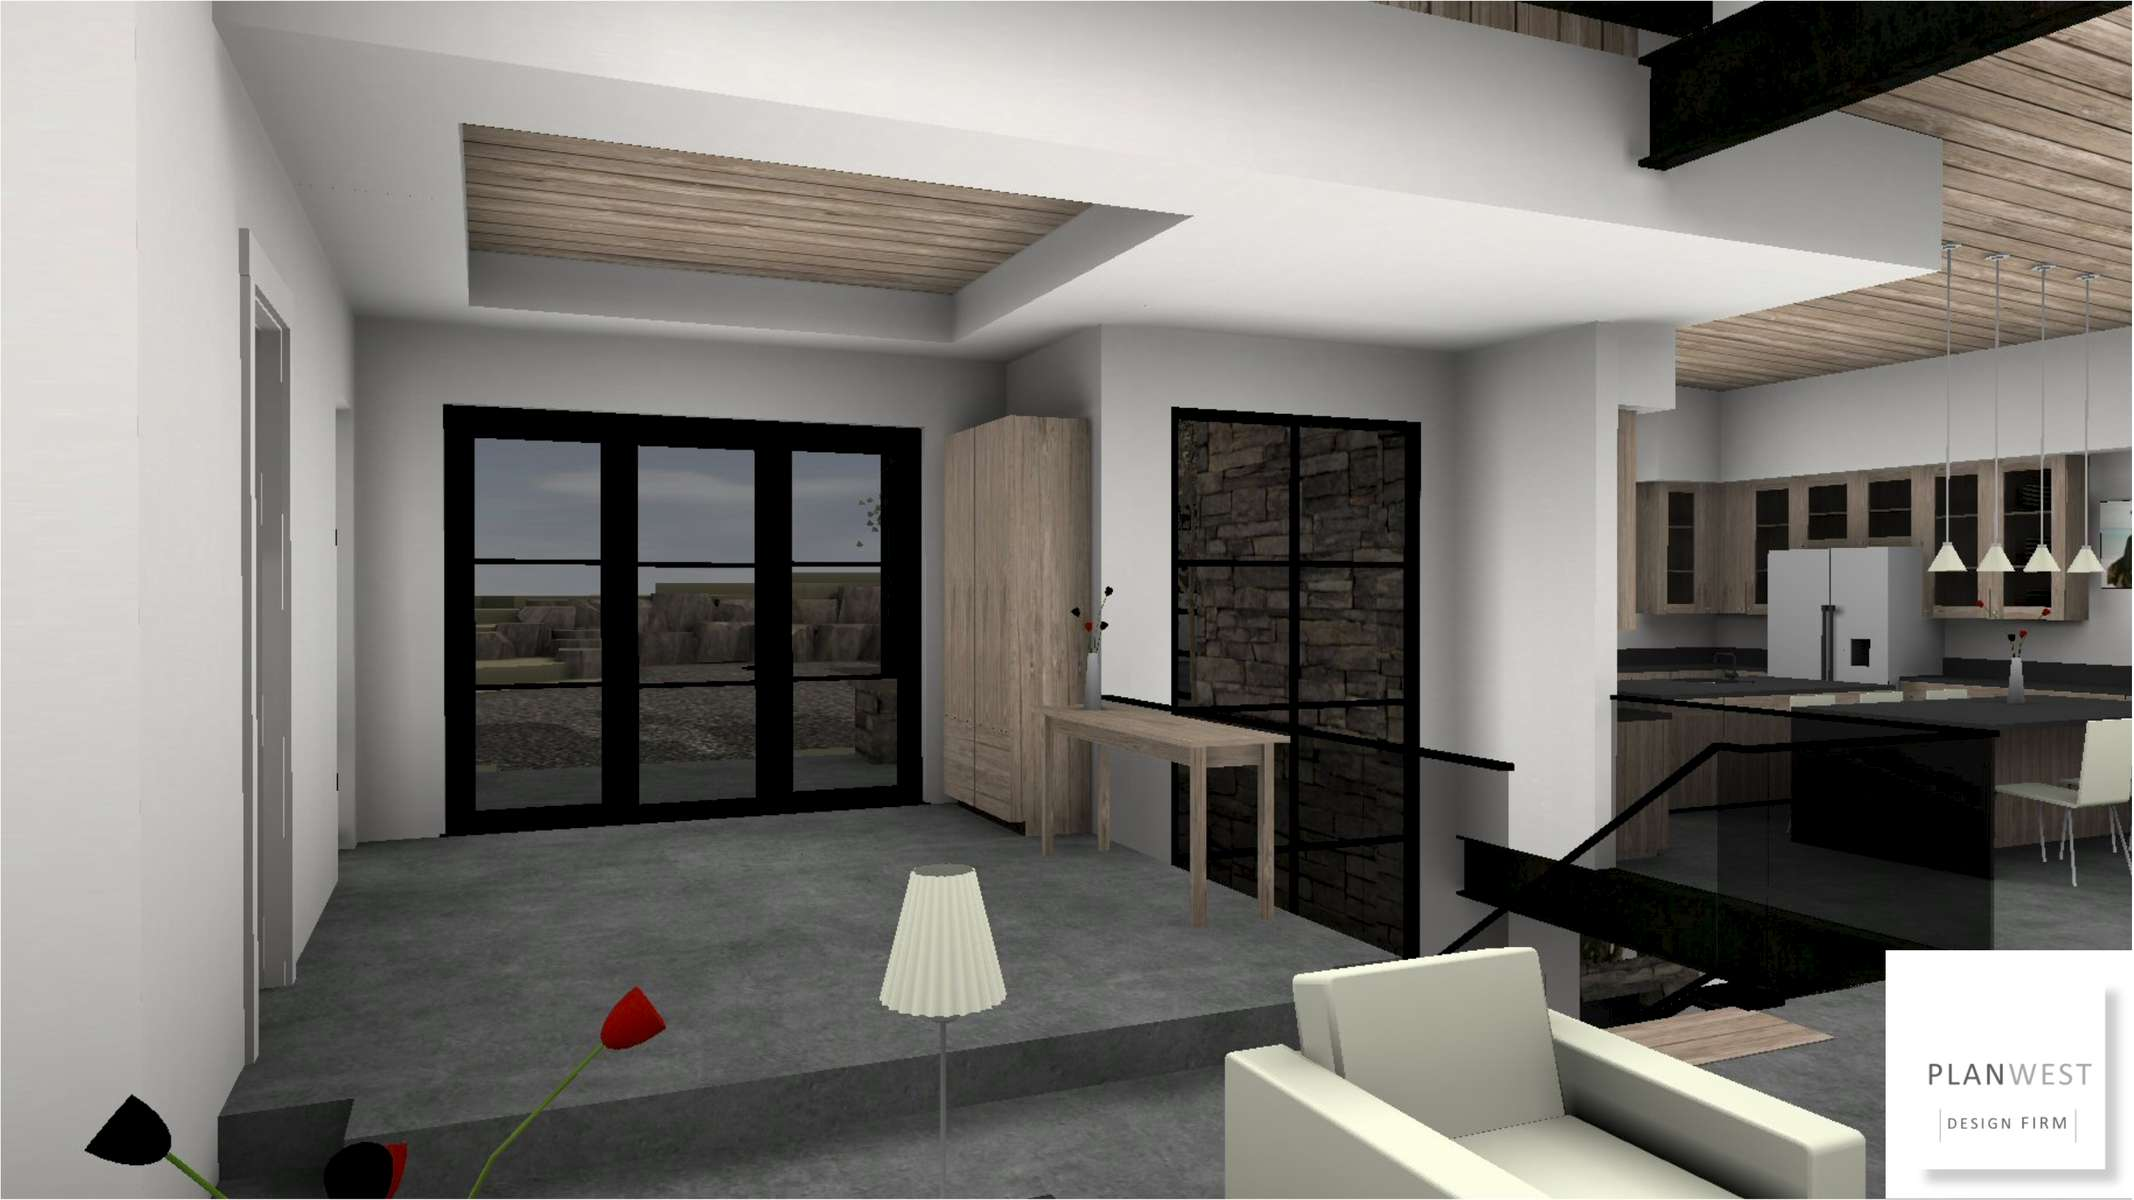 Plan-West-Design-Firm_Projects-in-process-1541